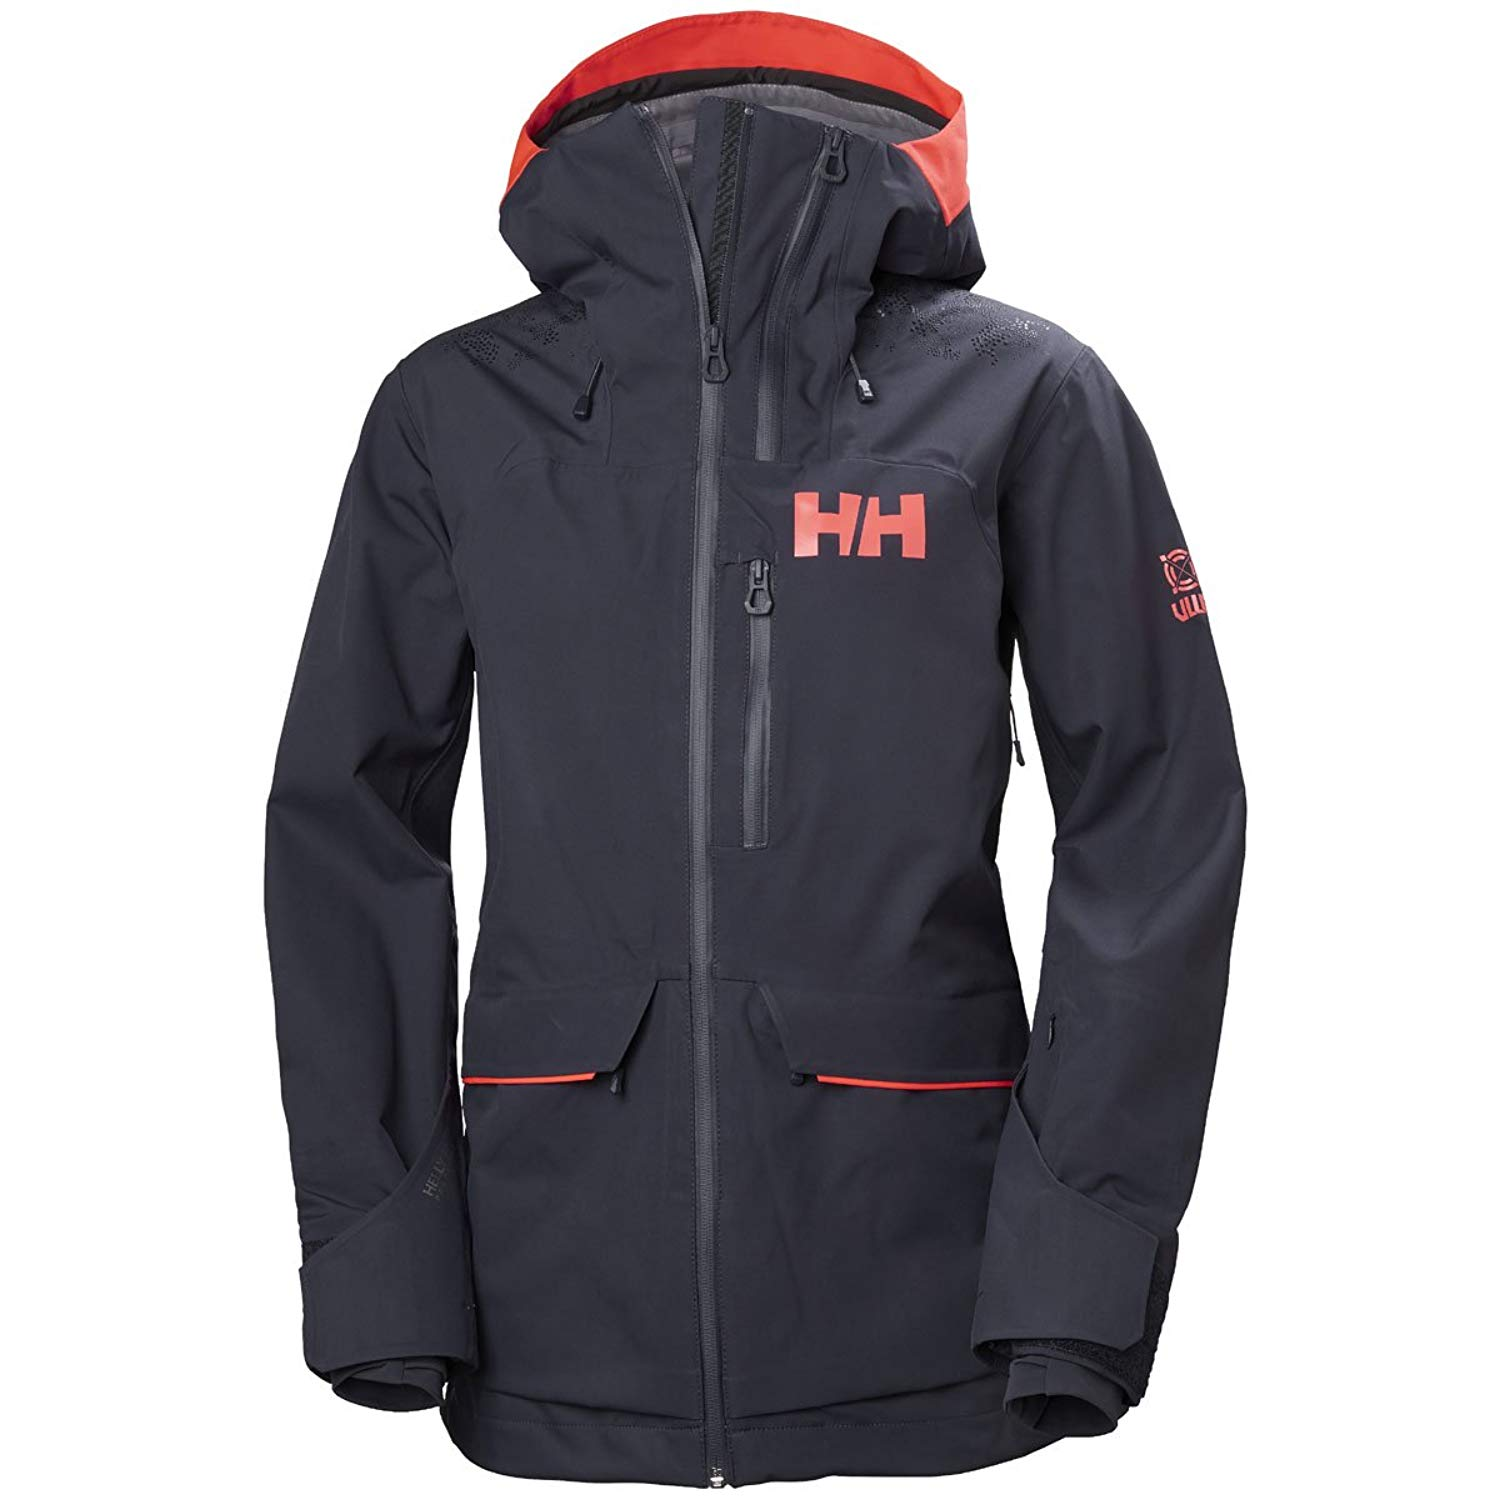 3594c3986e Get Quotations · Helly Hansen Women's Aurora 2.0 Waterproof Shell Ski Jacket